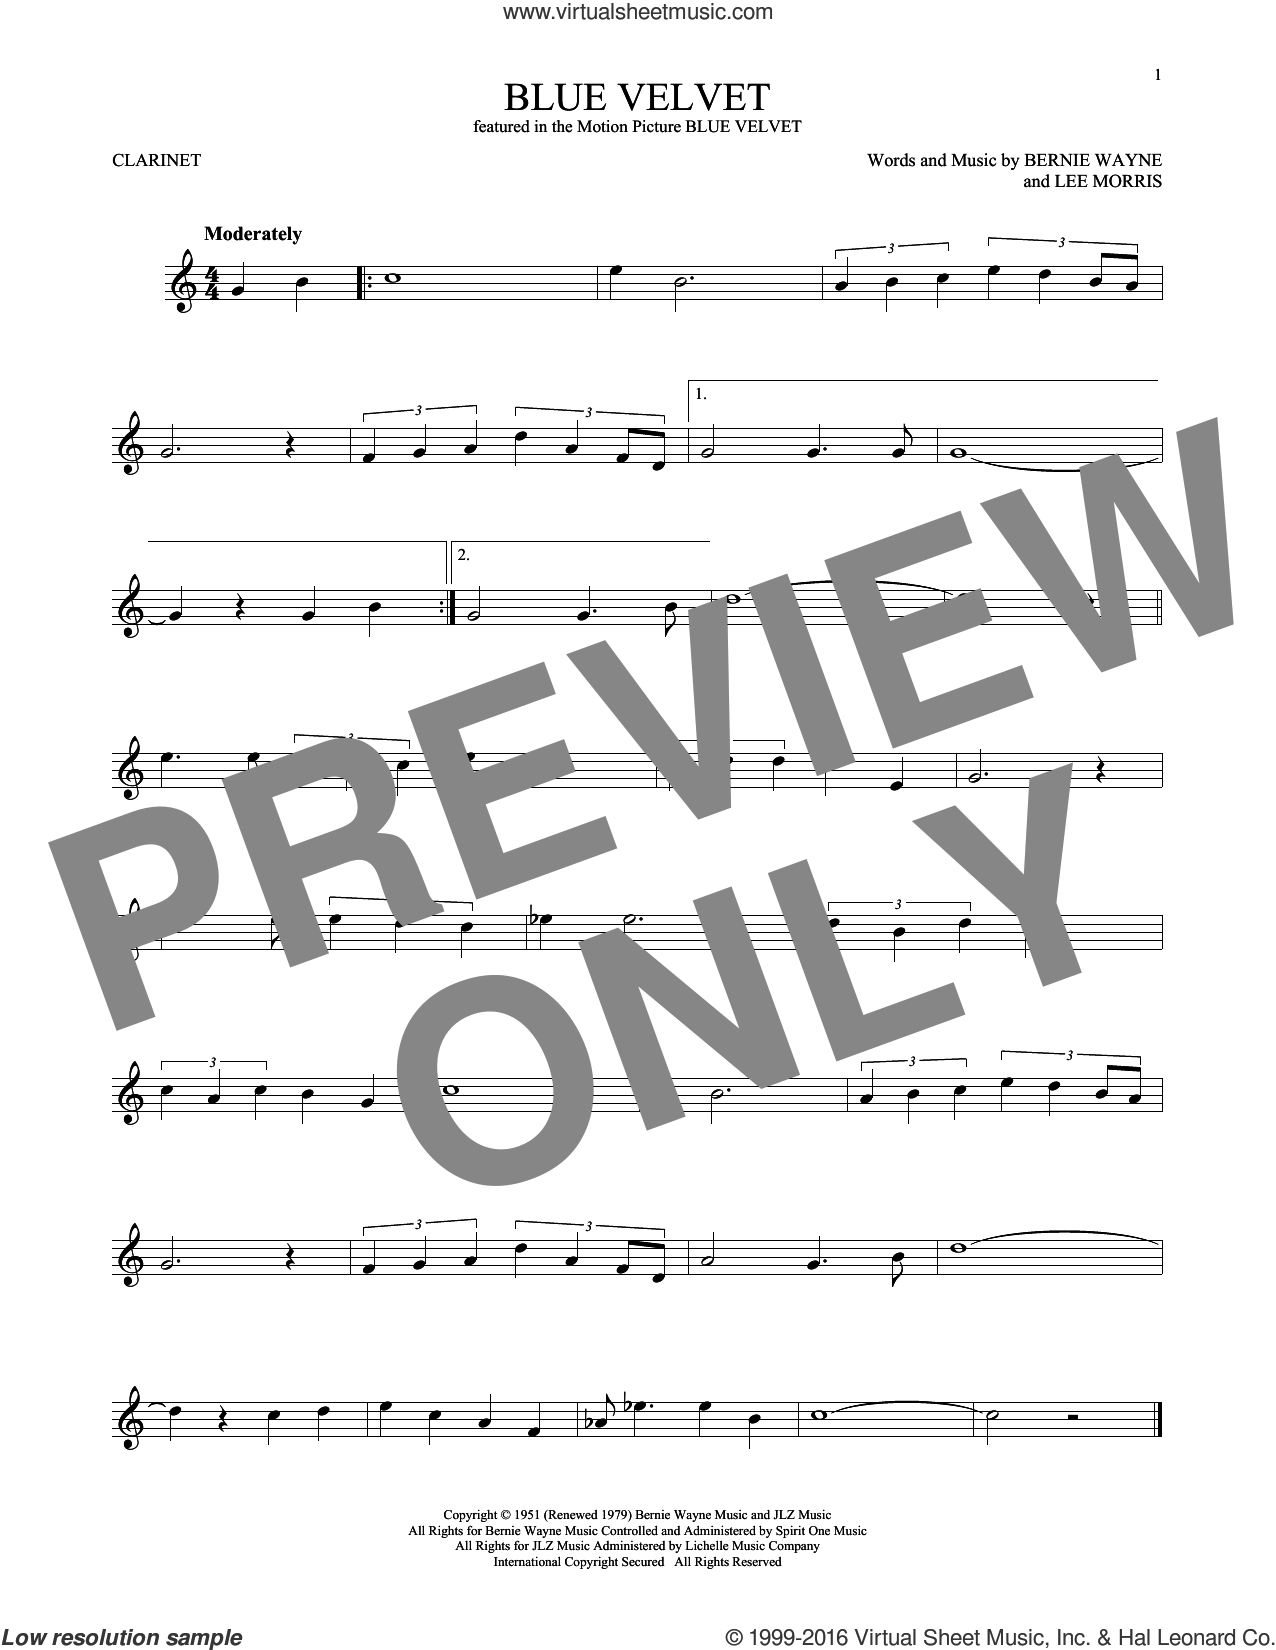 Blue Velvet sheet music for clarinet solo by Bobby Vinton, Statues, Bernie Wayne and Lee Morris, intermediate skill level